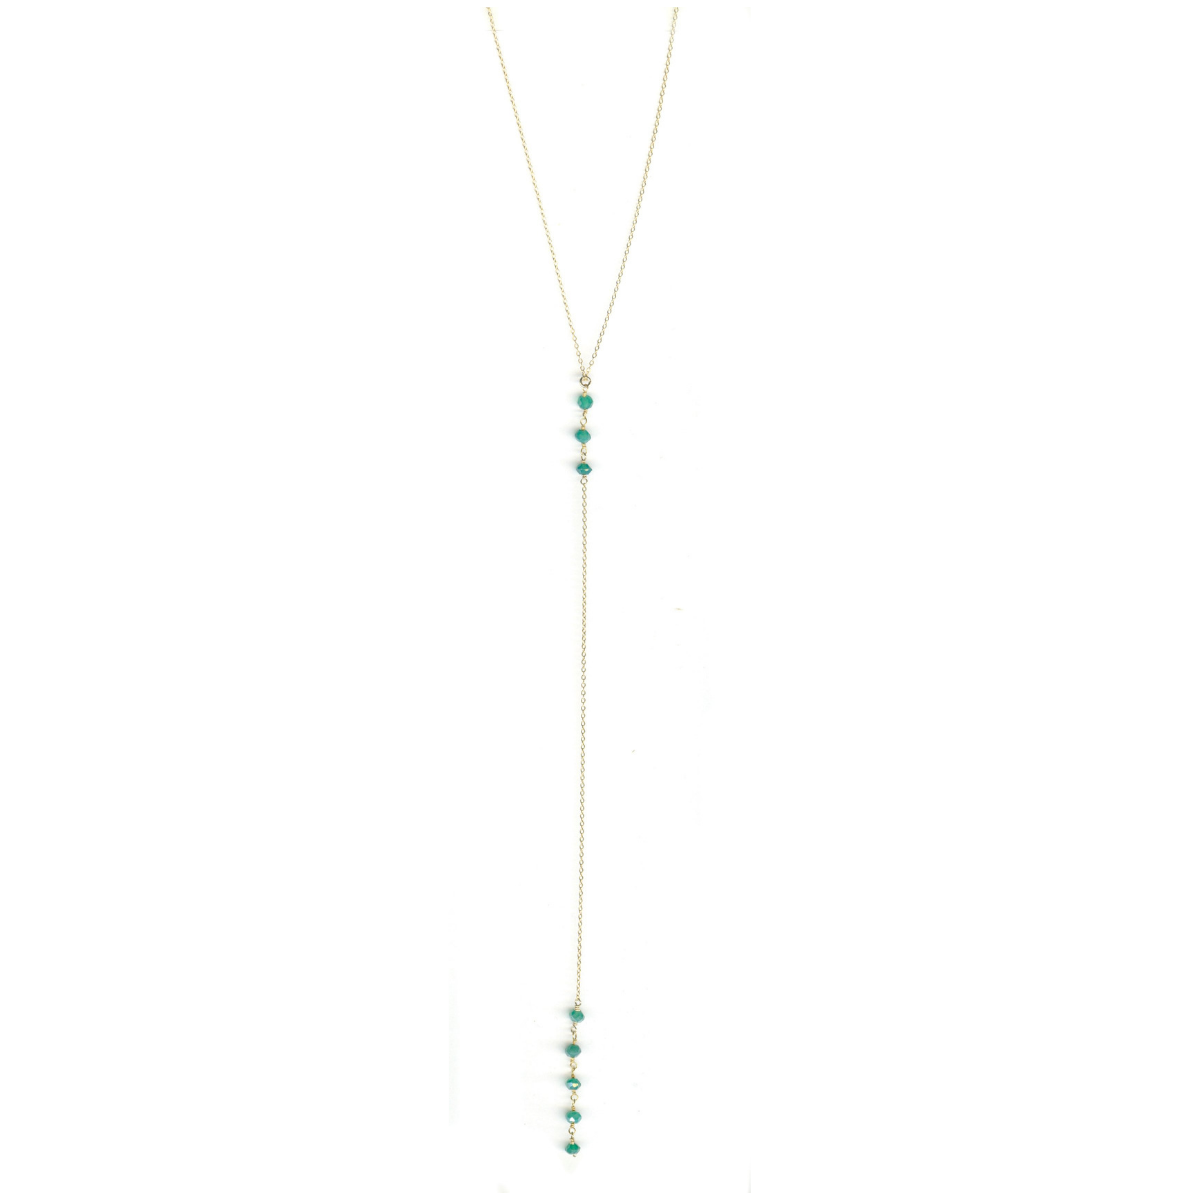 Cami Green Onyx Necklace